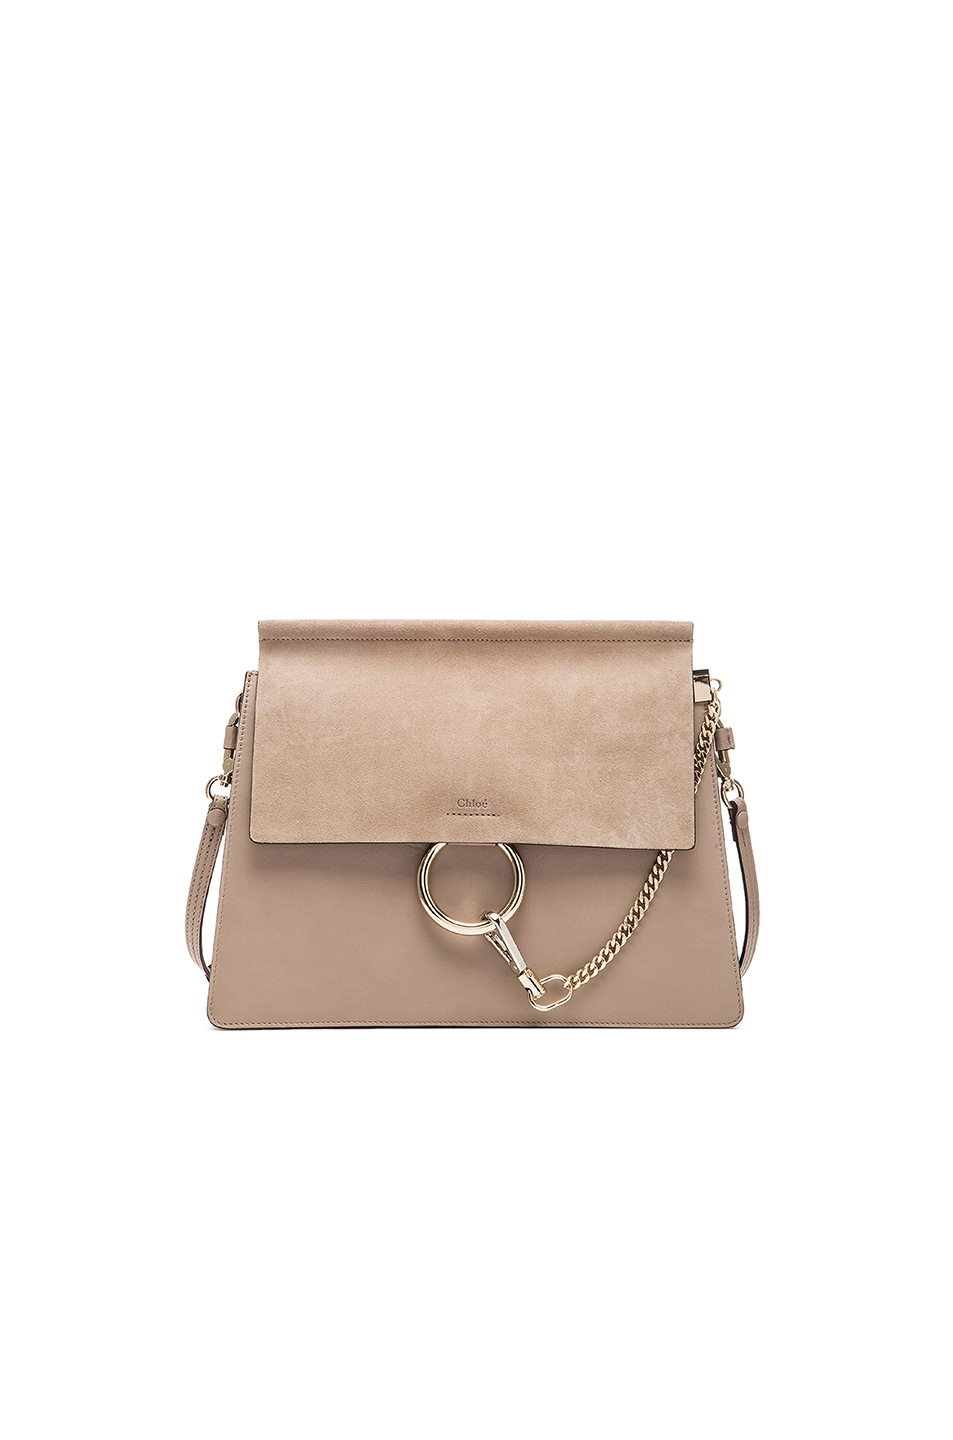 Image 1 of Chloe Medium Faye Bag in Motty Grey